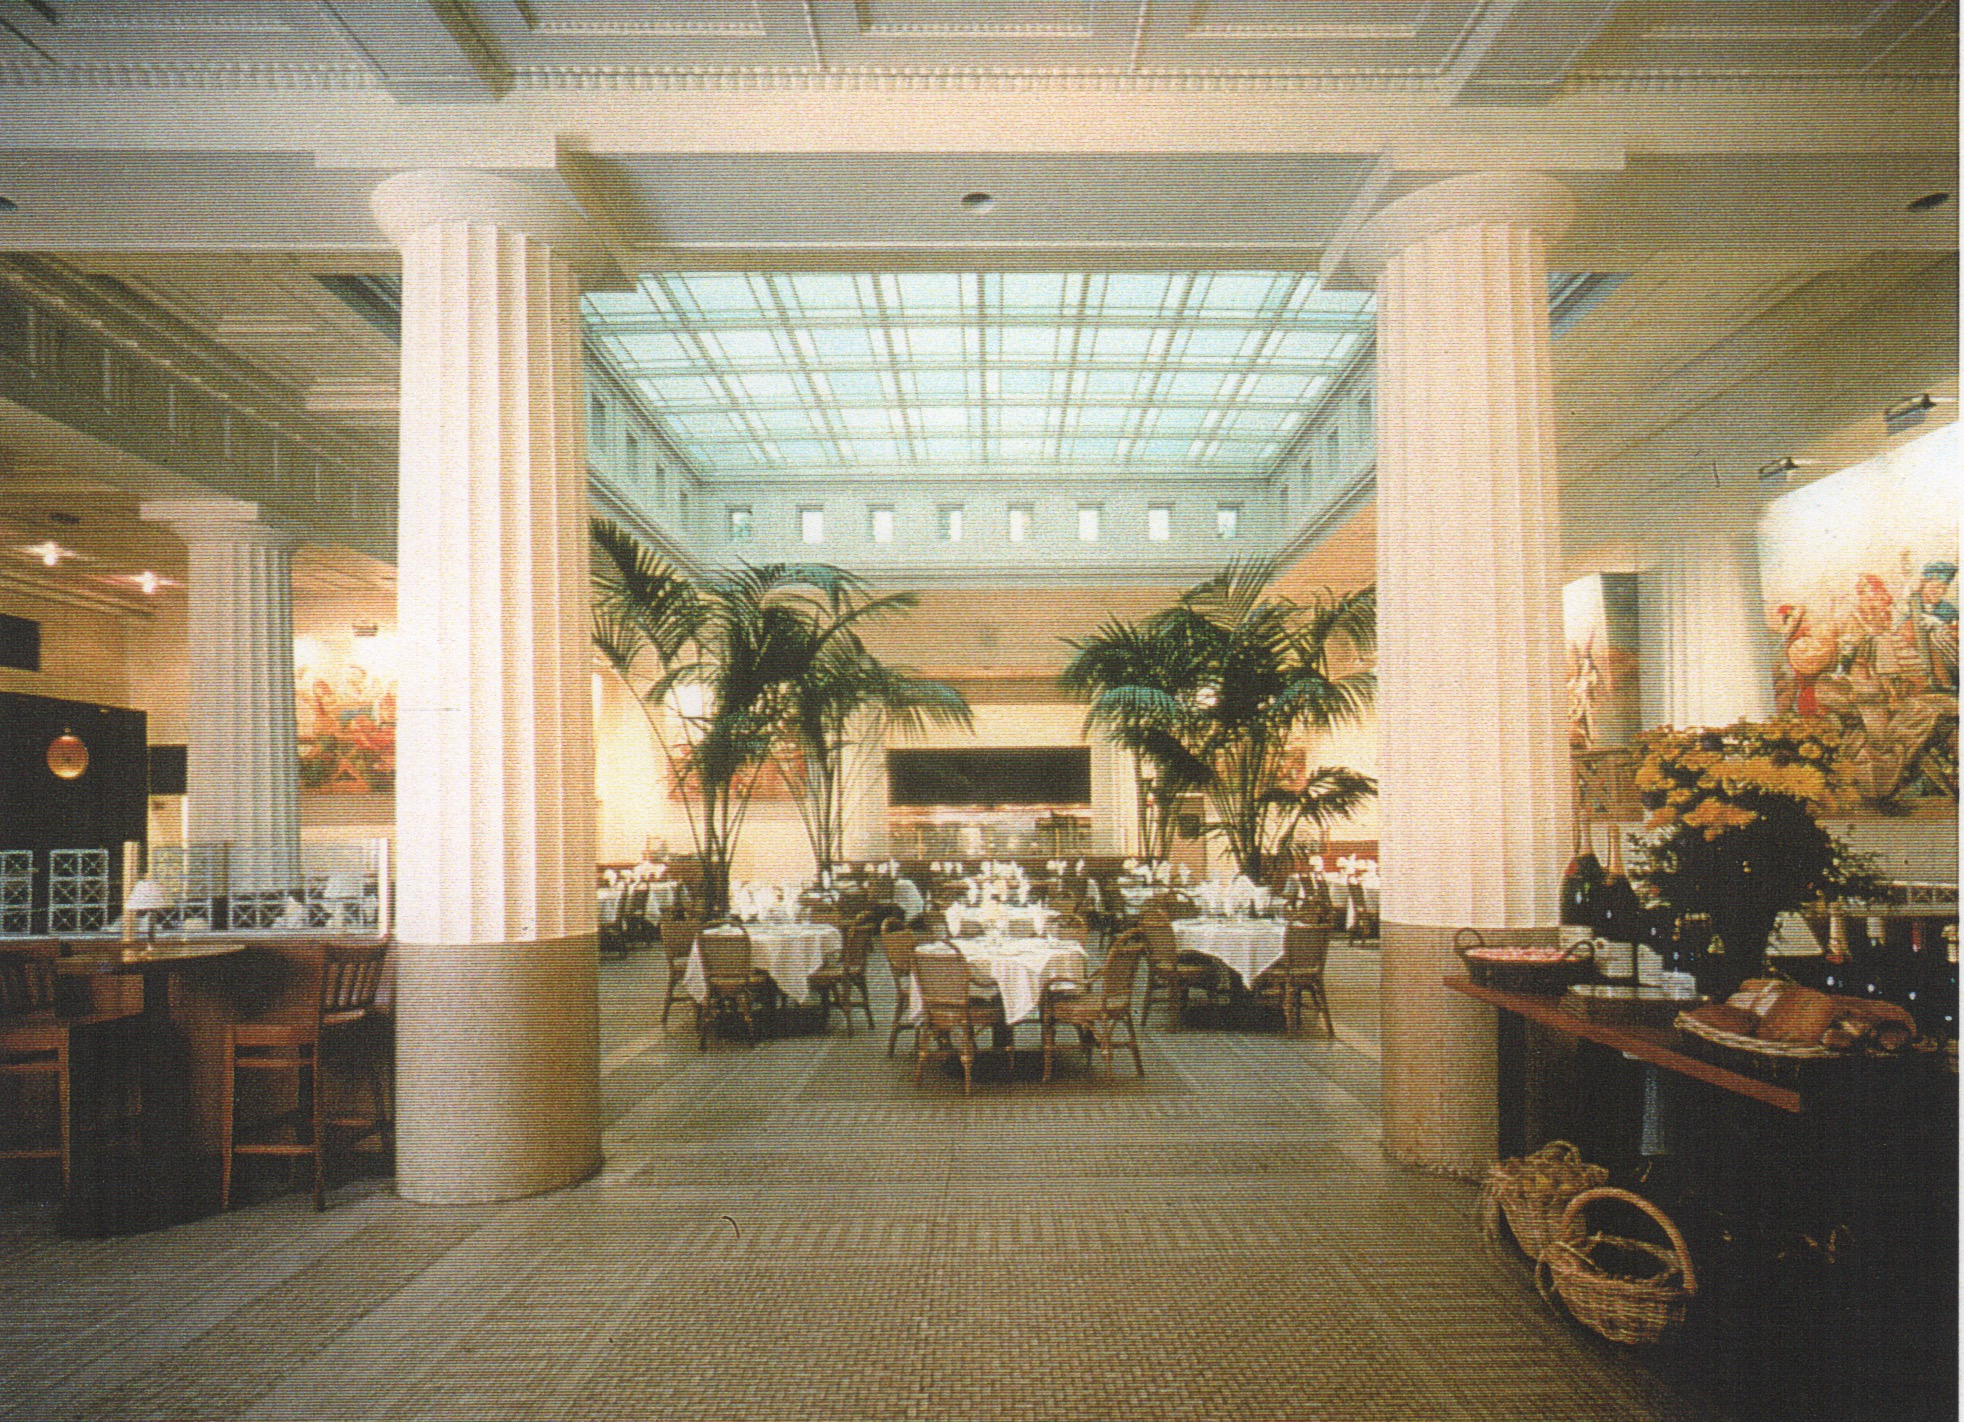 View of original bank lobby converted to a restaurant